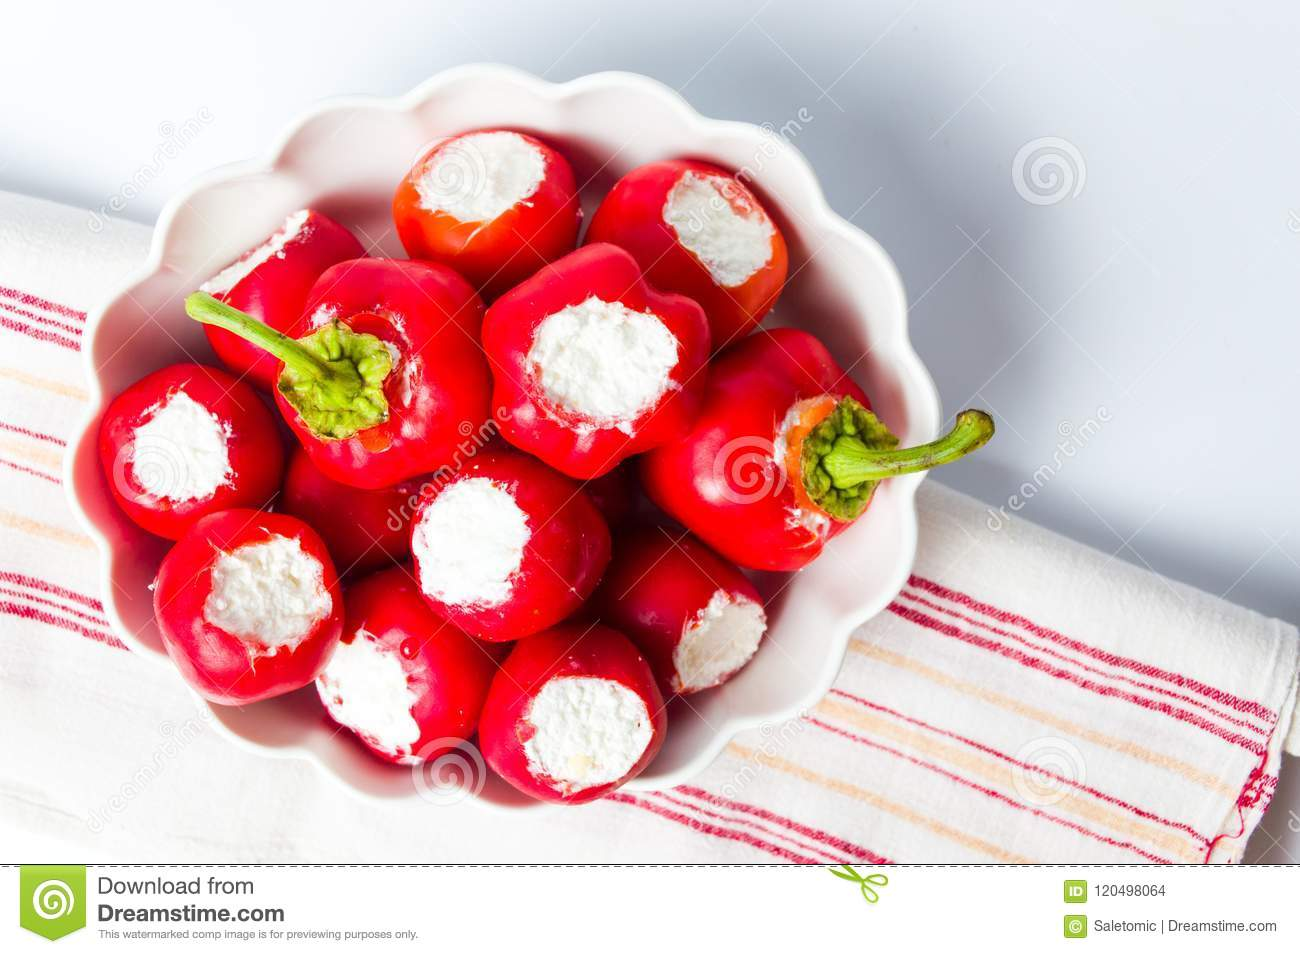 Red peppers stuffed with cheese